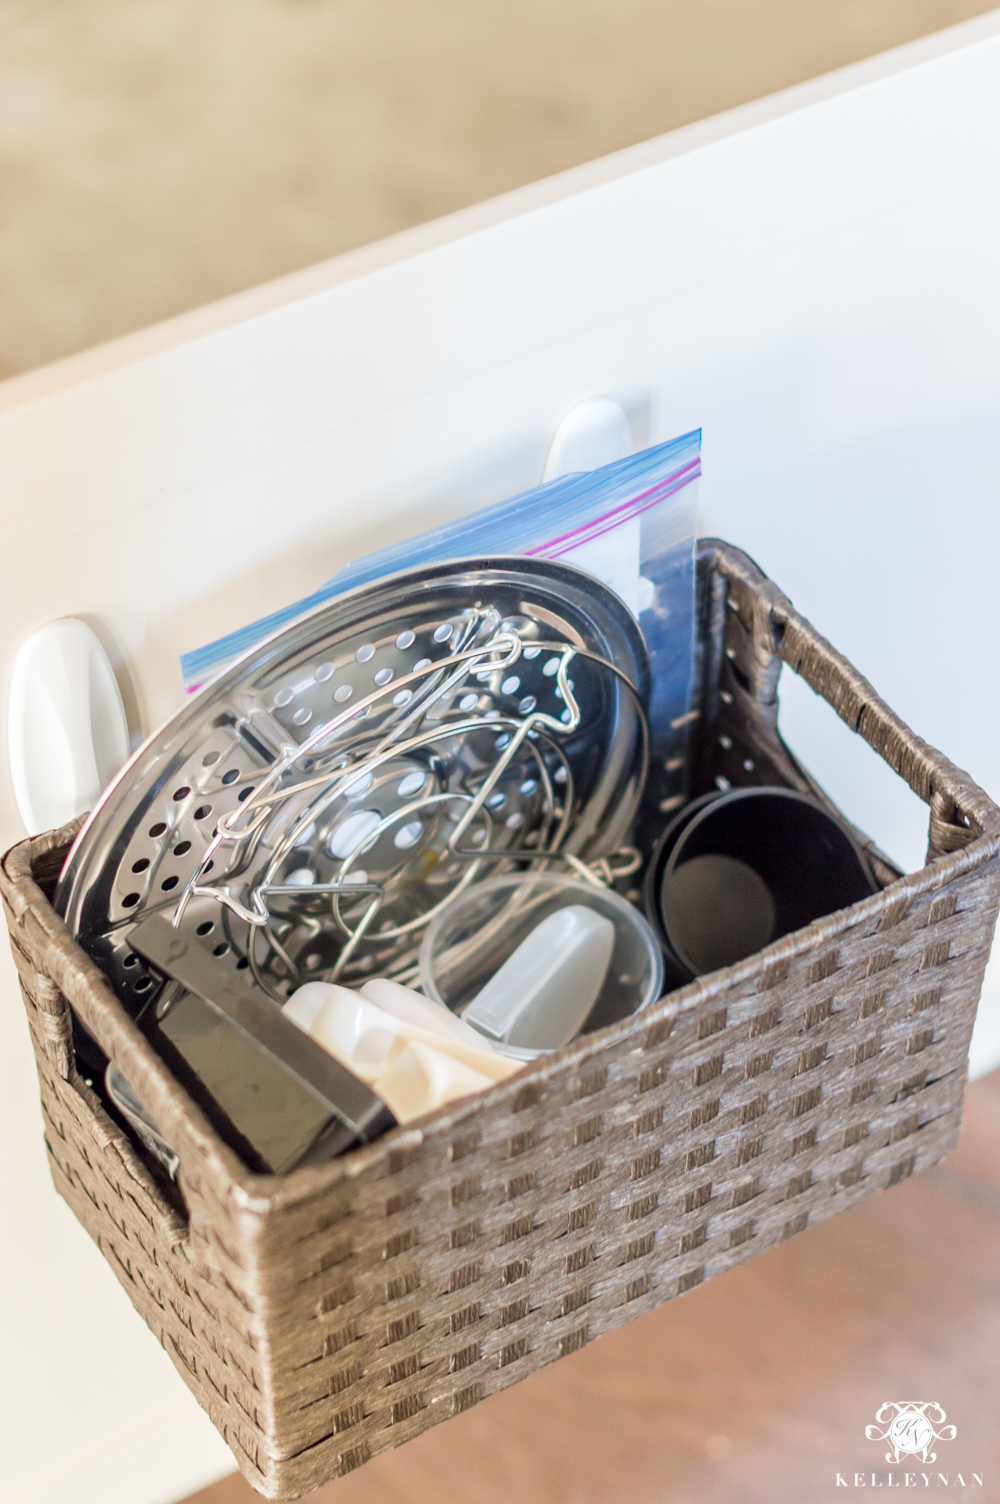 Hanging a storage basket inside the cabinet for small appliance parts